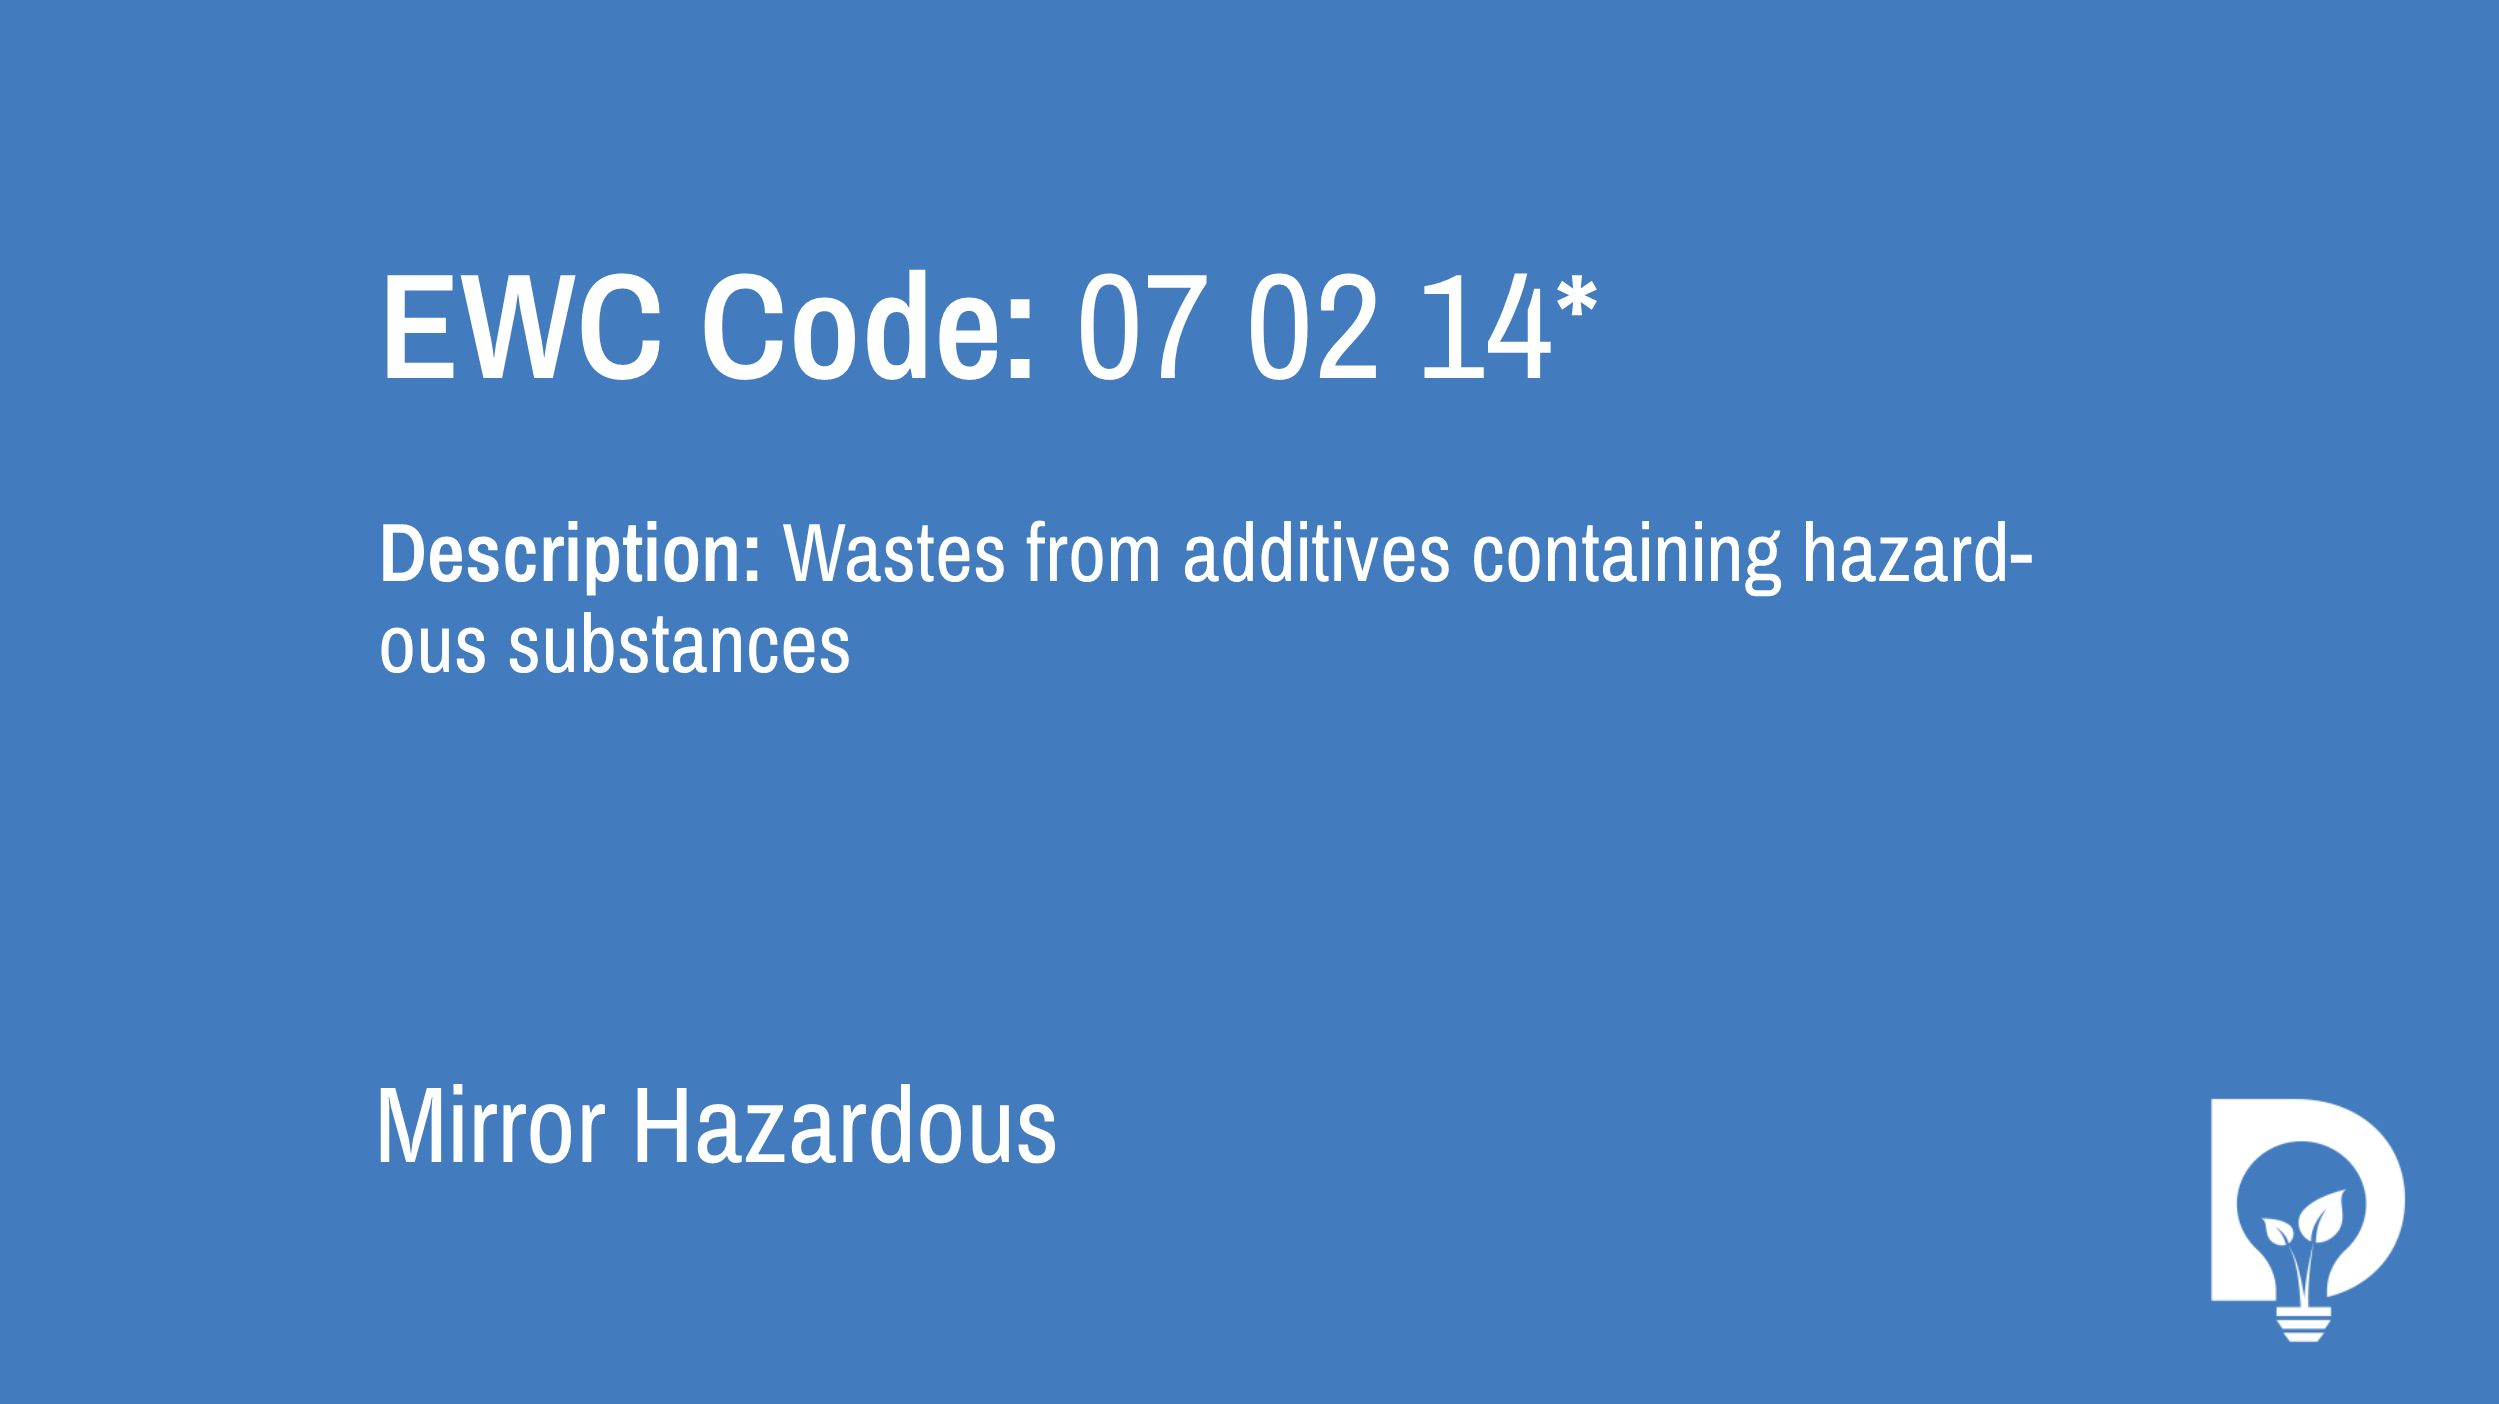 EWC Code: 07 02 14* - wastes from additives containing hazardous substances. Type: Mirror Hazardous. Image by Dsposal